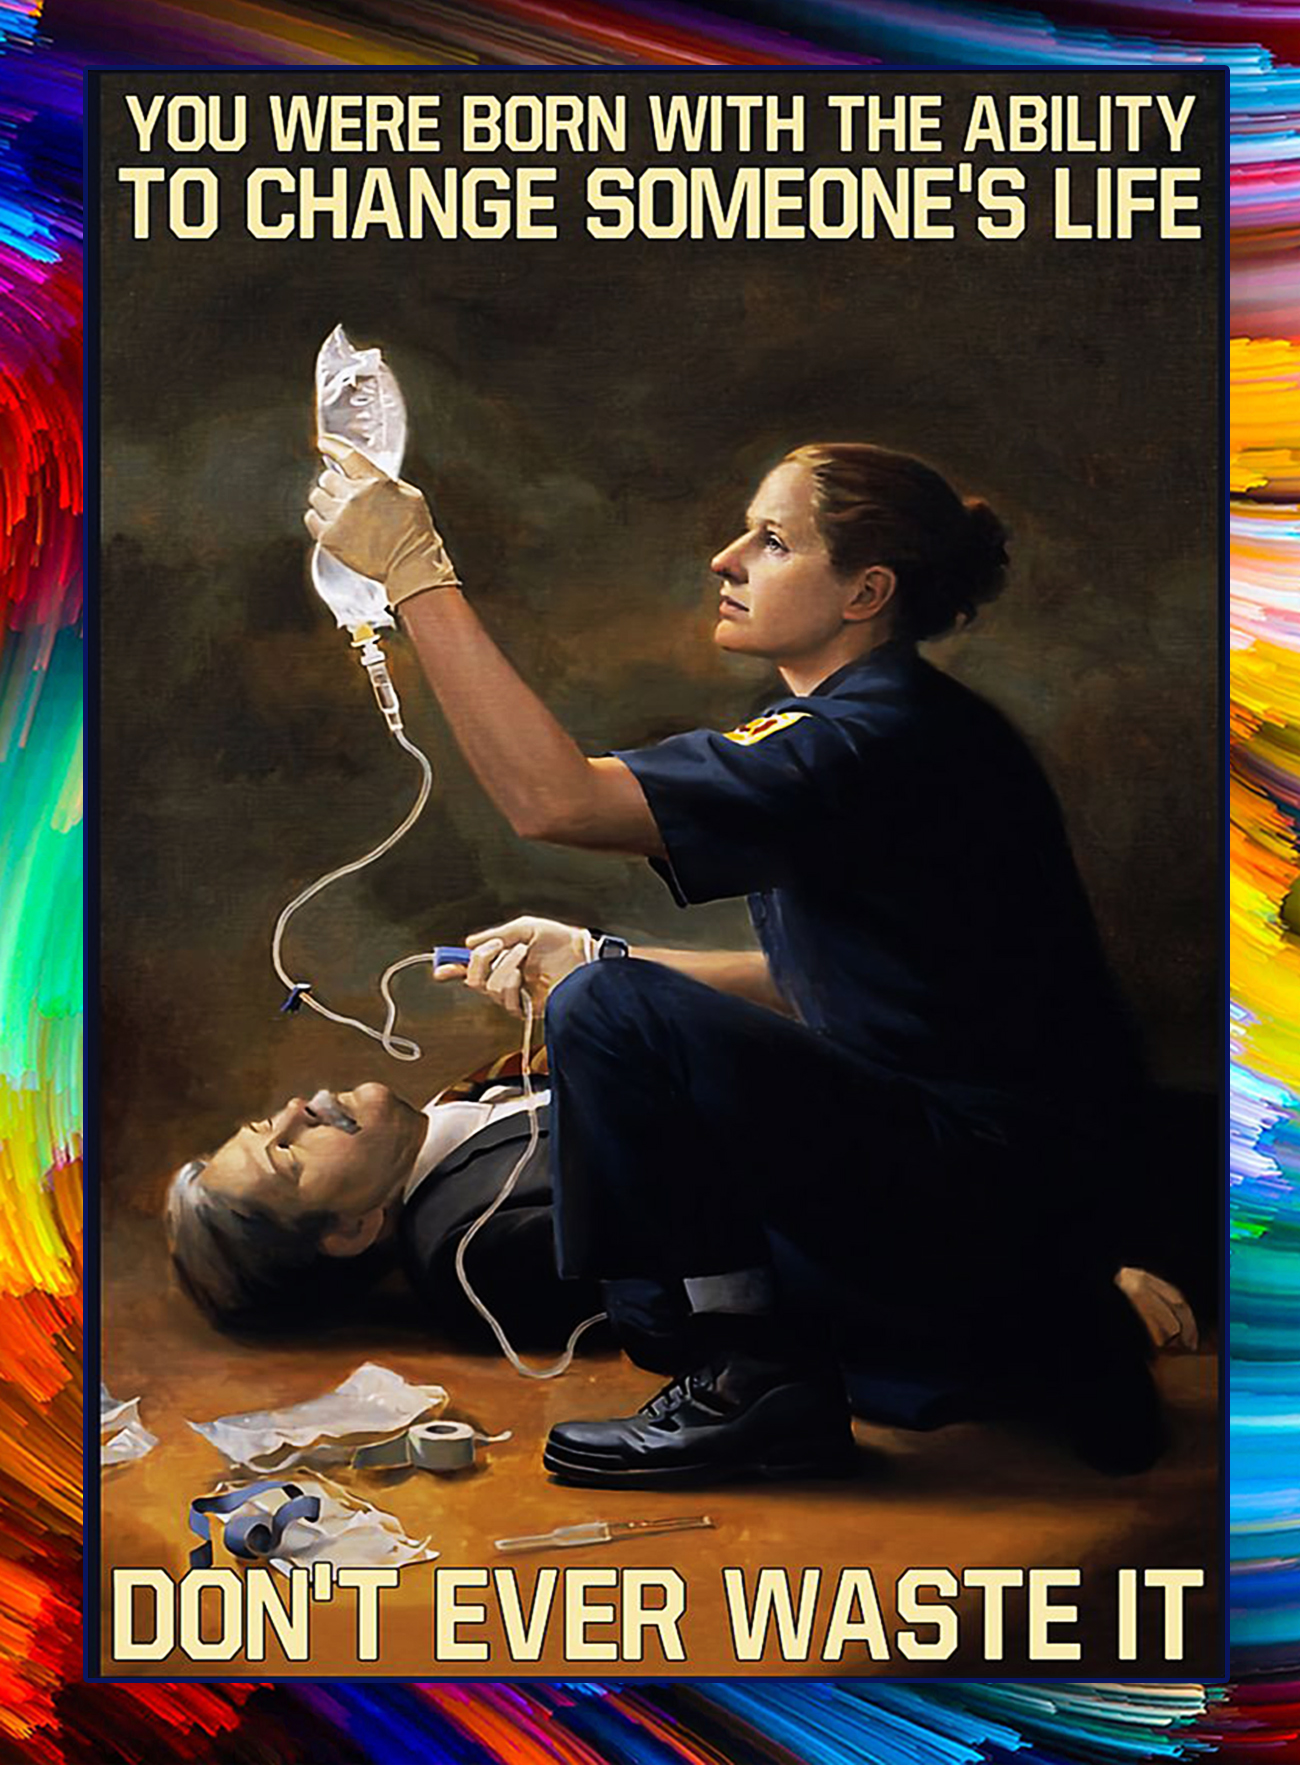 Paramedic You were born with the ability to change someone's life don't ever waste it poster - A4